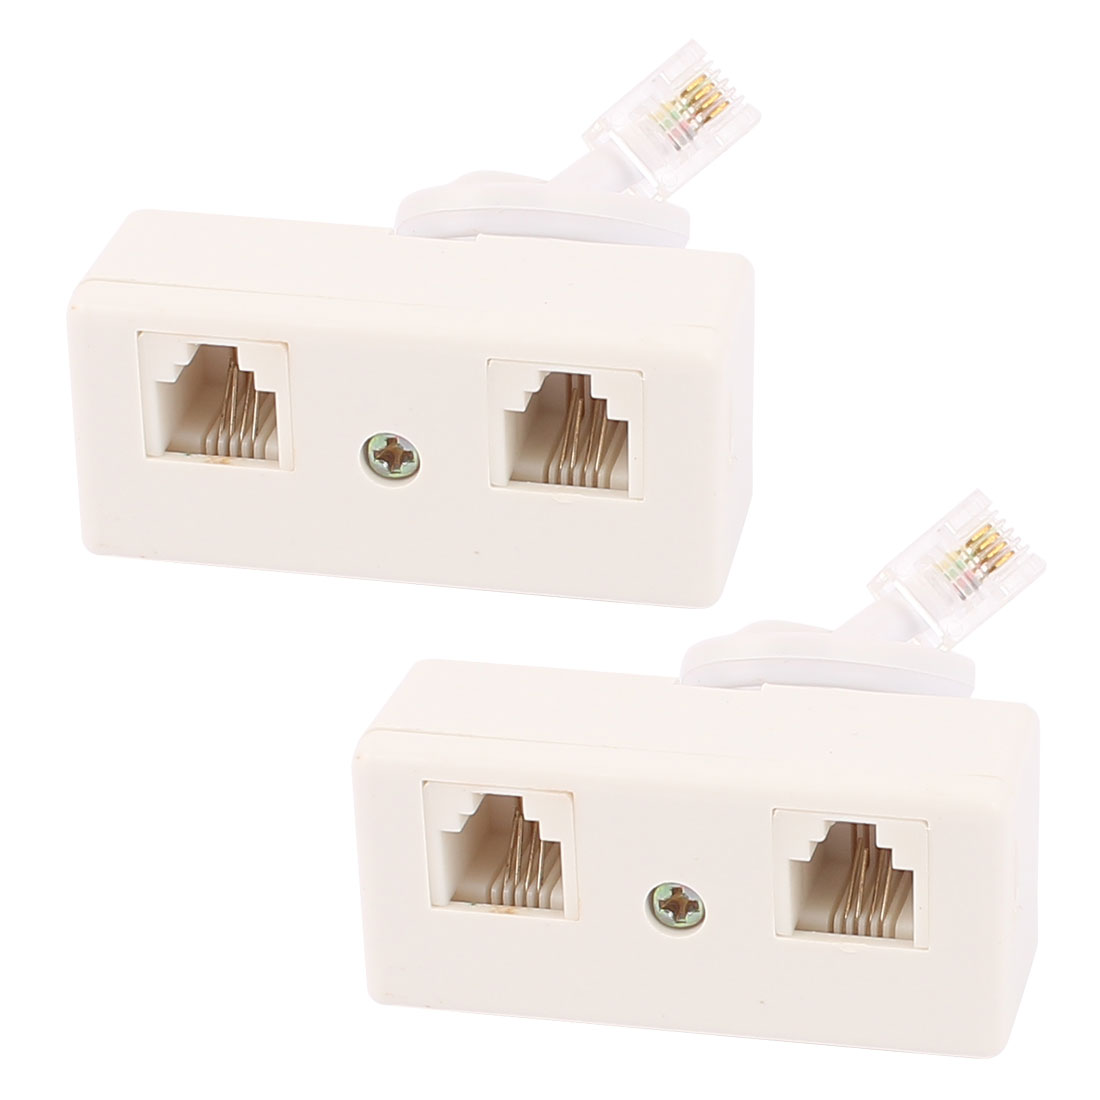 2Pcs RJ11 6P4C US Male to US Dual Female Connector Telephone Cable Adapter